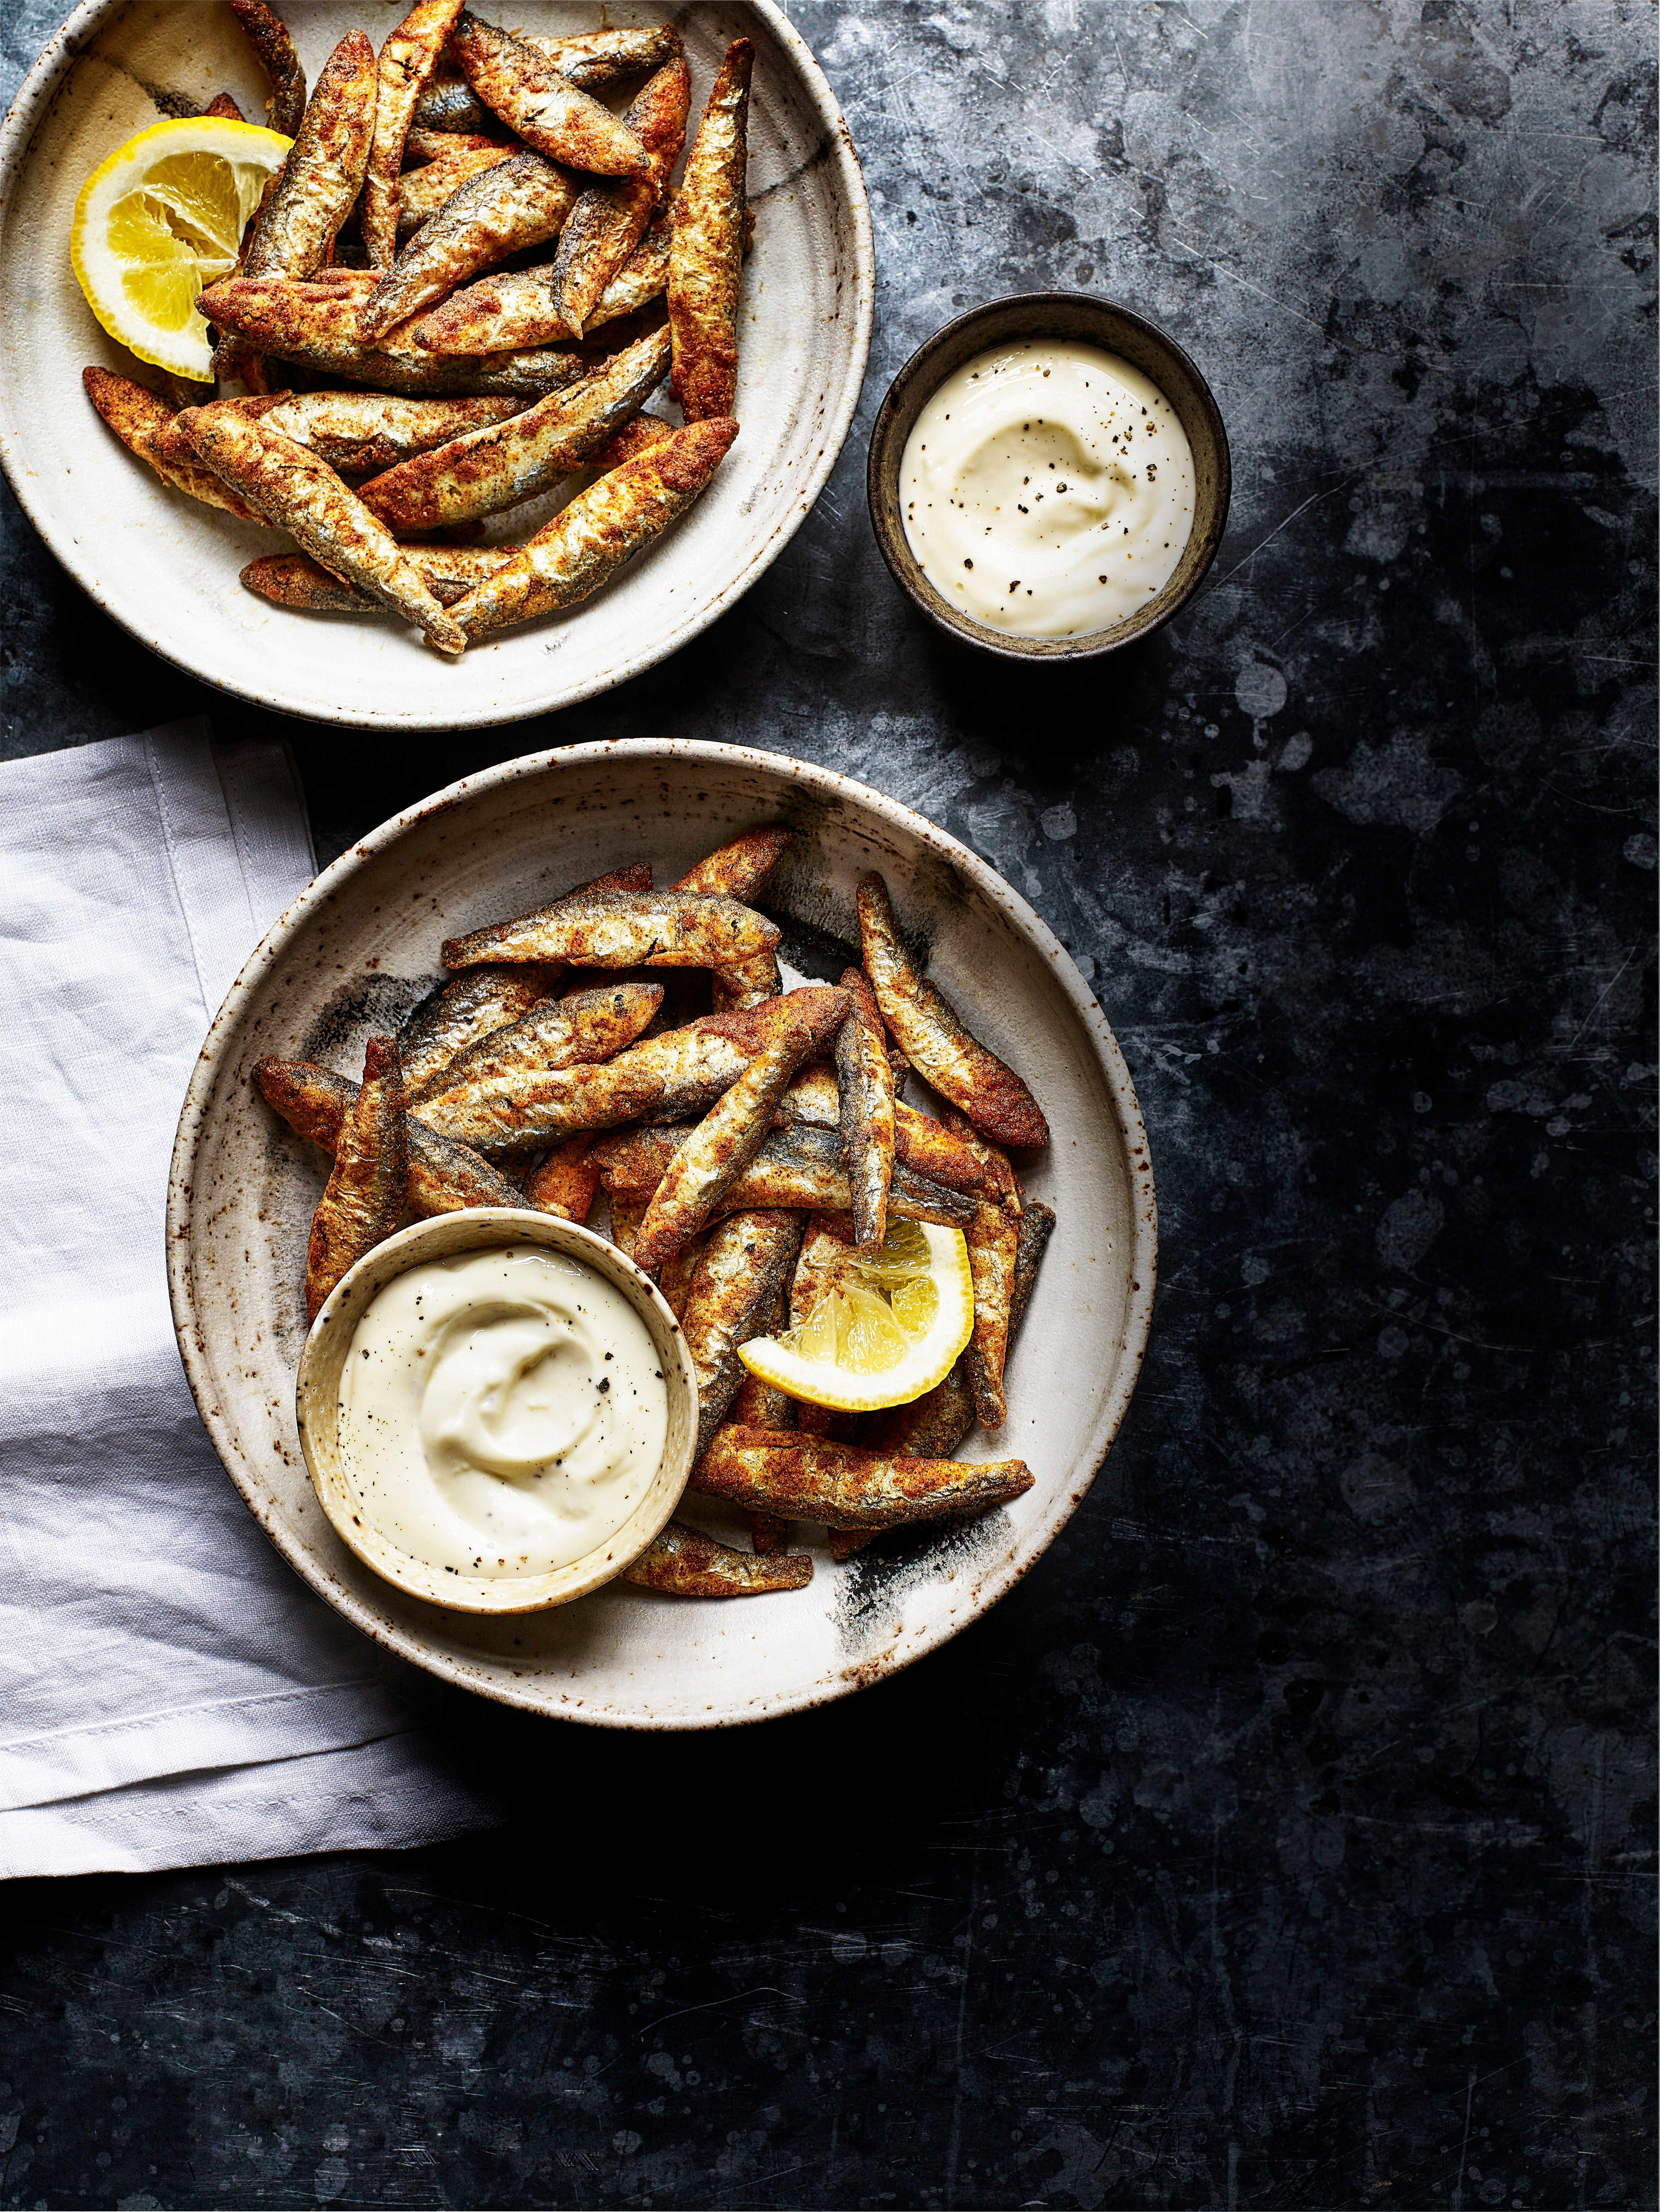 Devilled Whitebait with Roasted Garlic Mayo